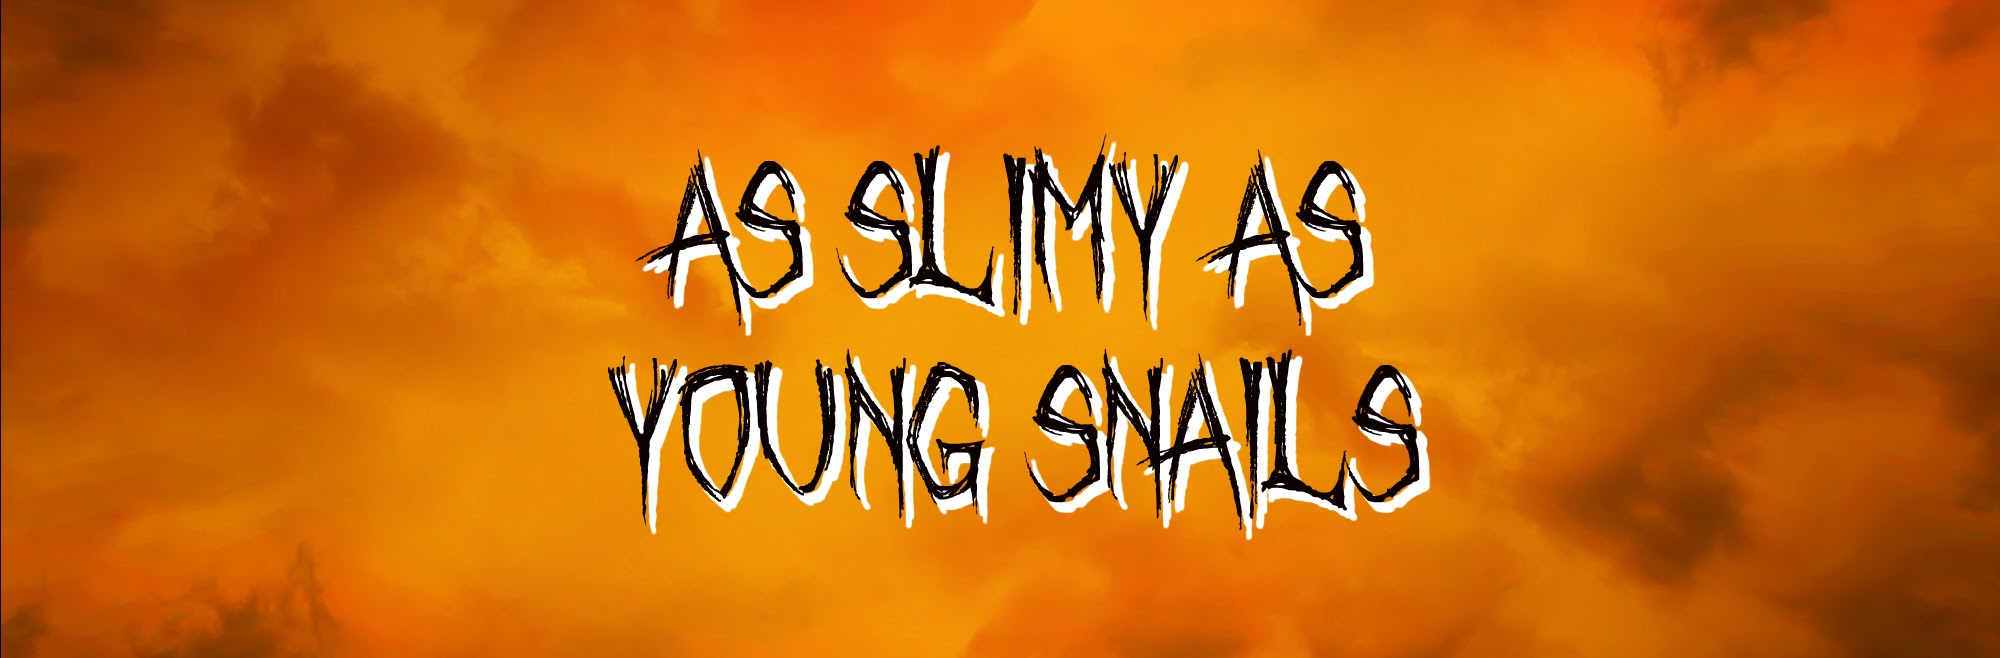 AS SLIMY AS YOUNG SNAILS button.jpg